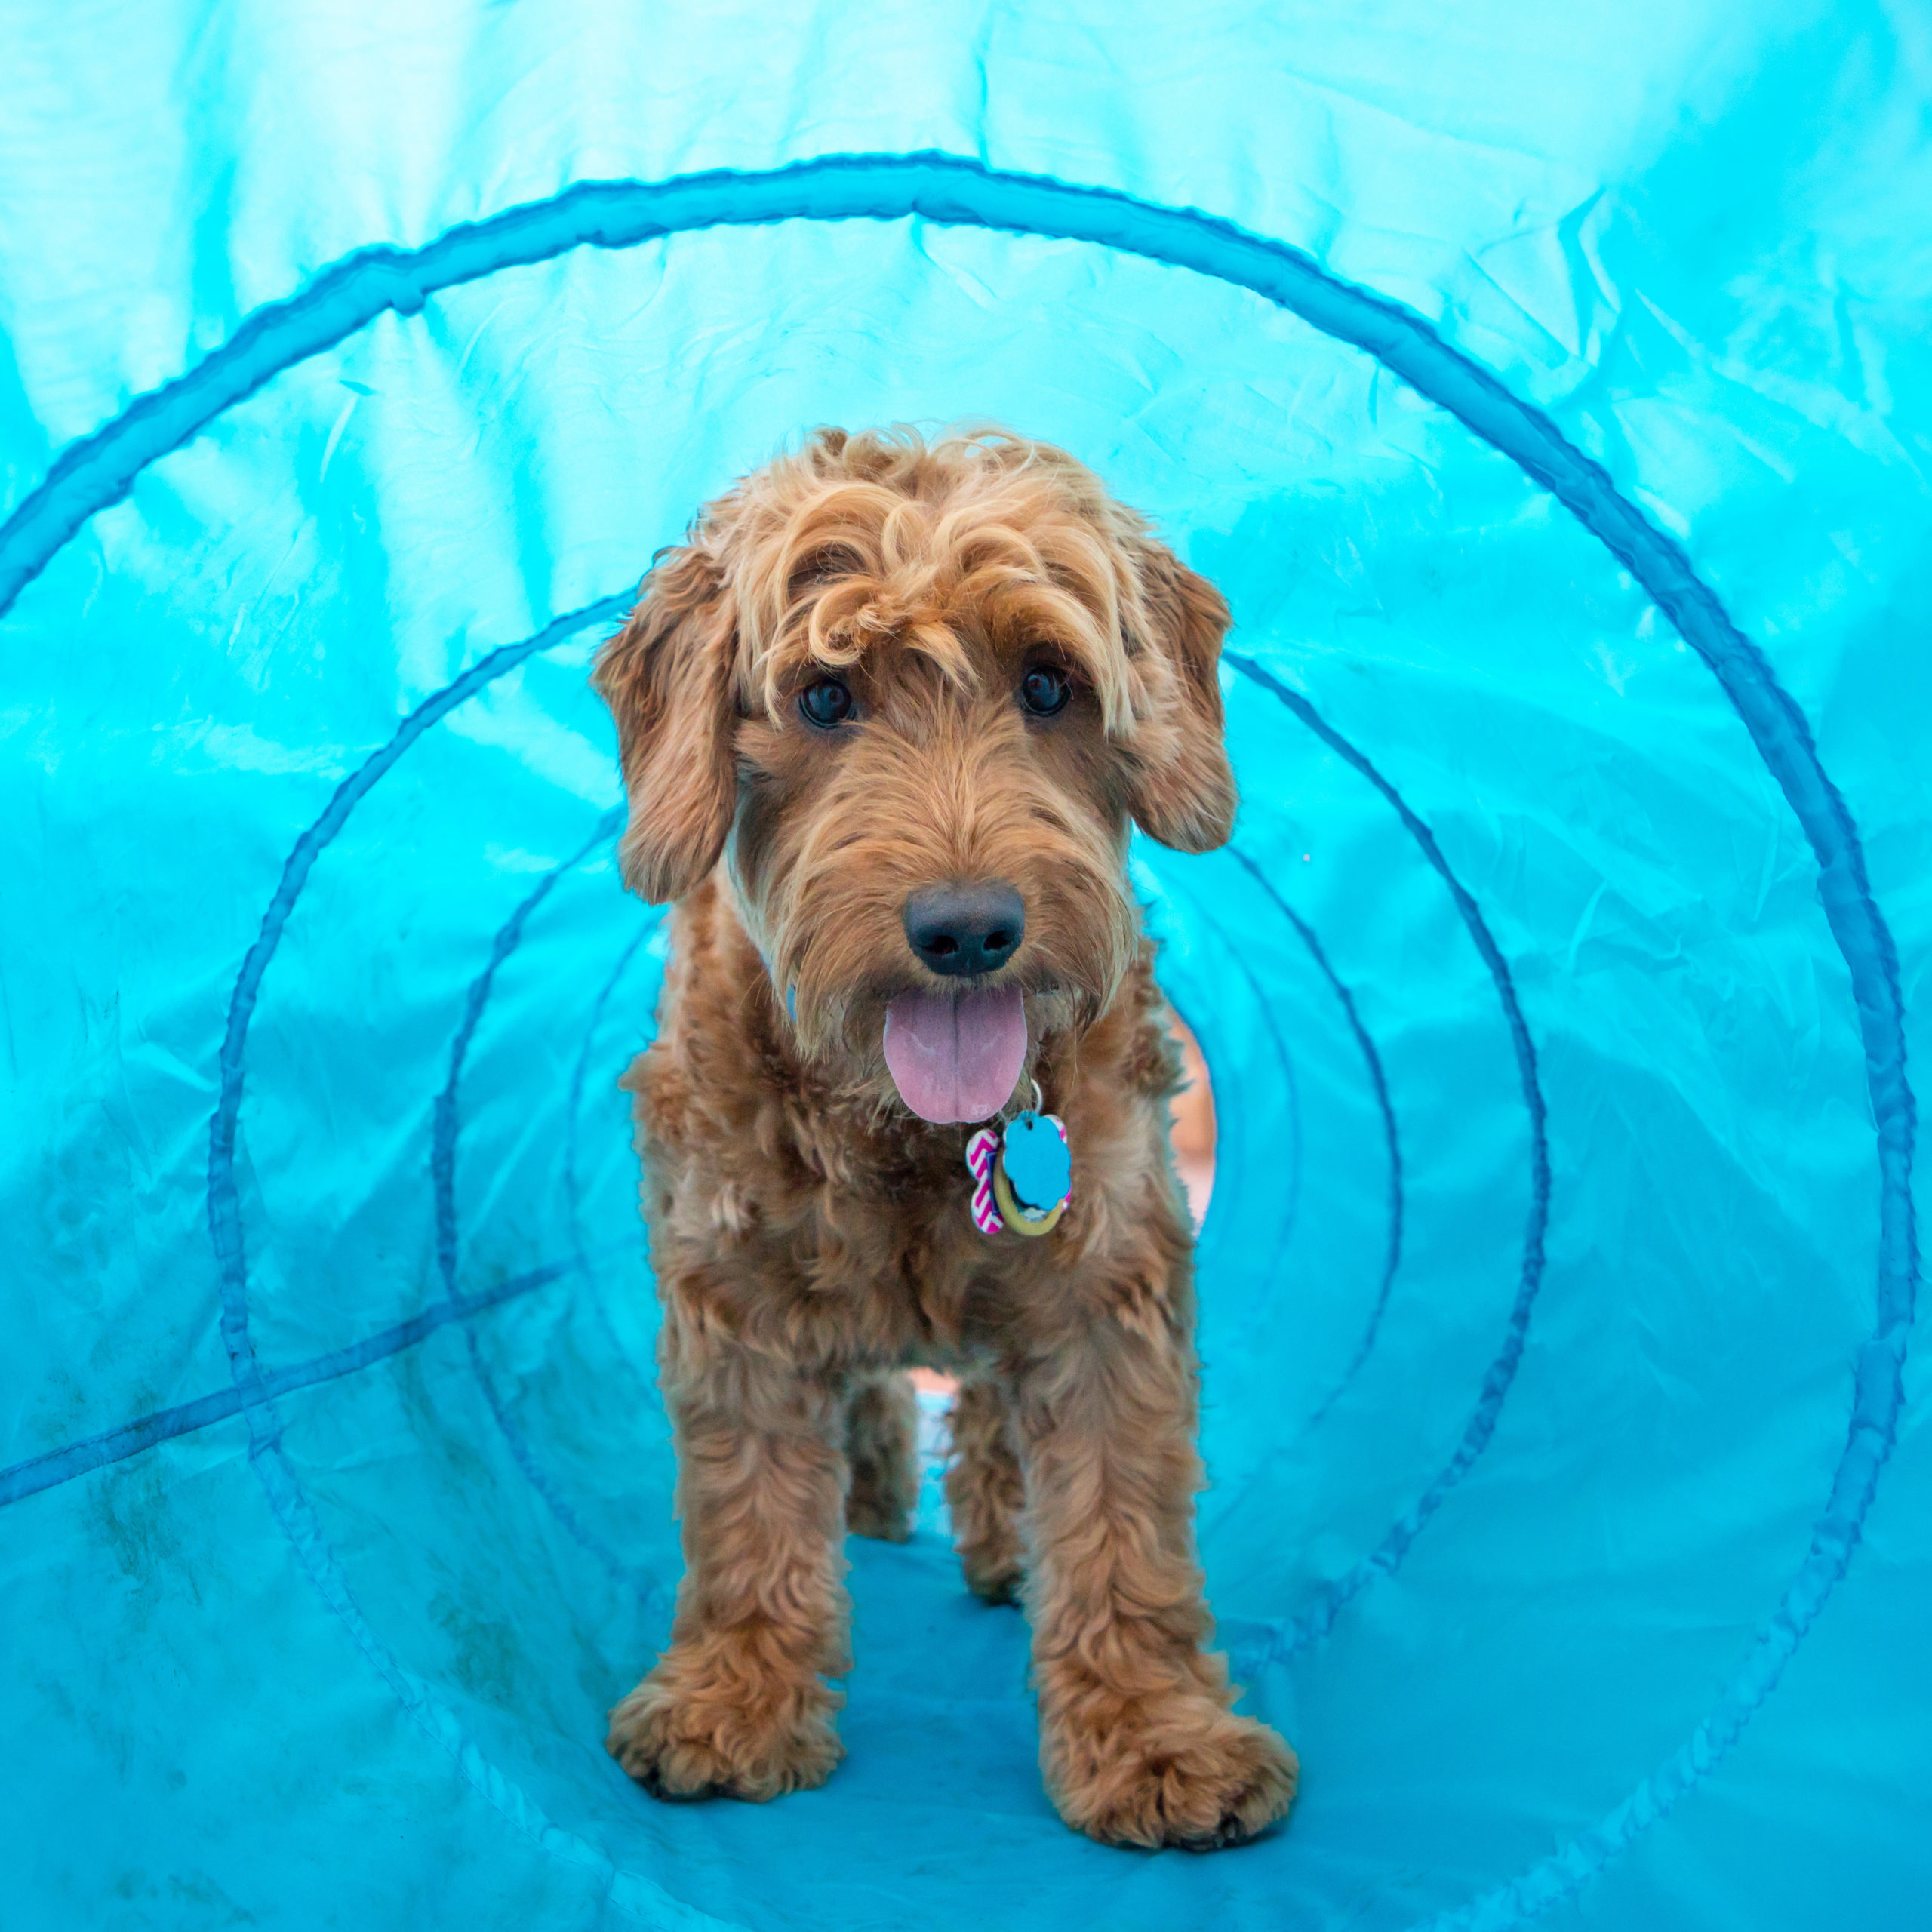 Mini golden doodle in open tunnel agility course